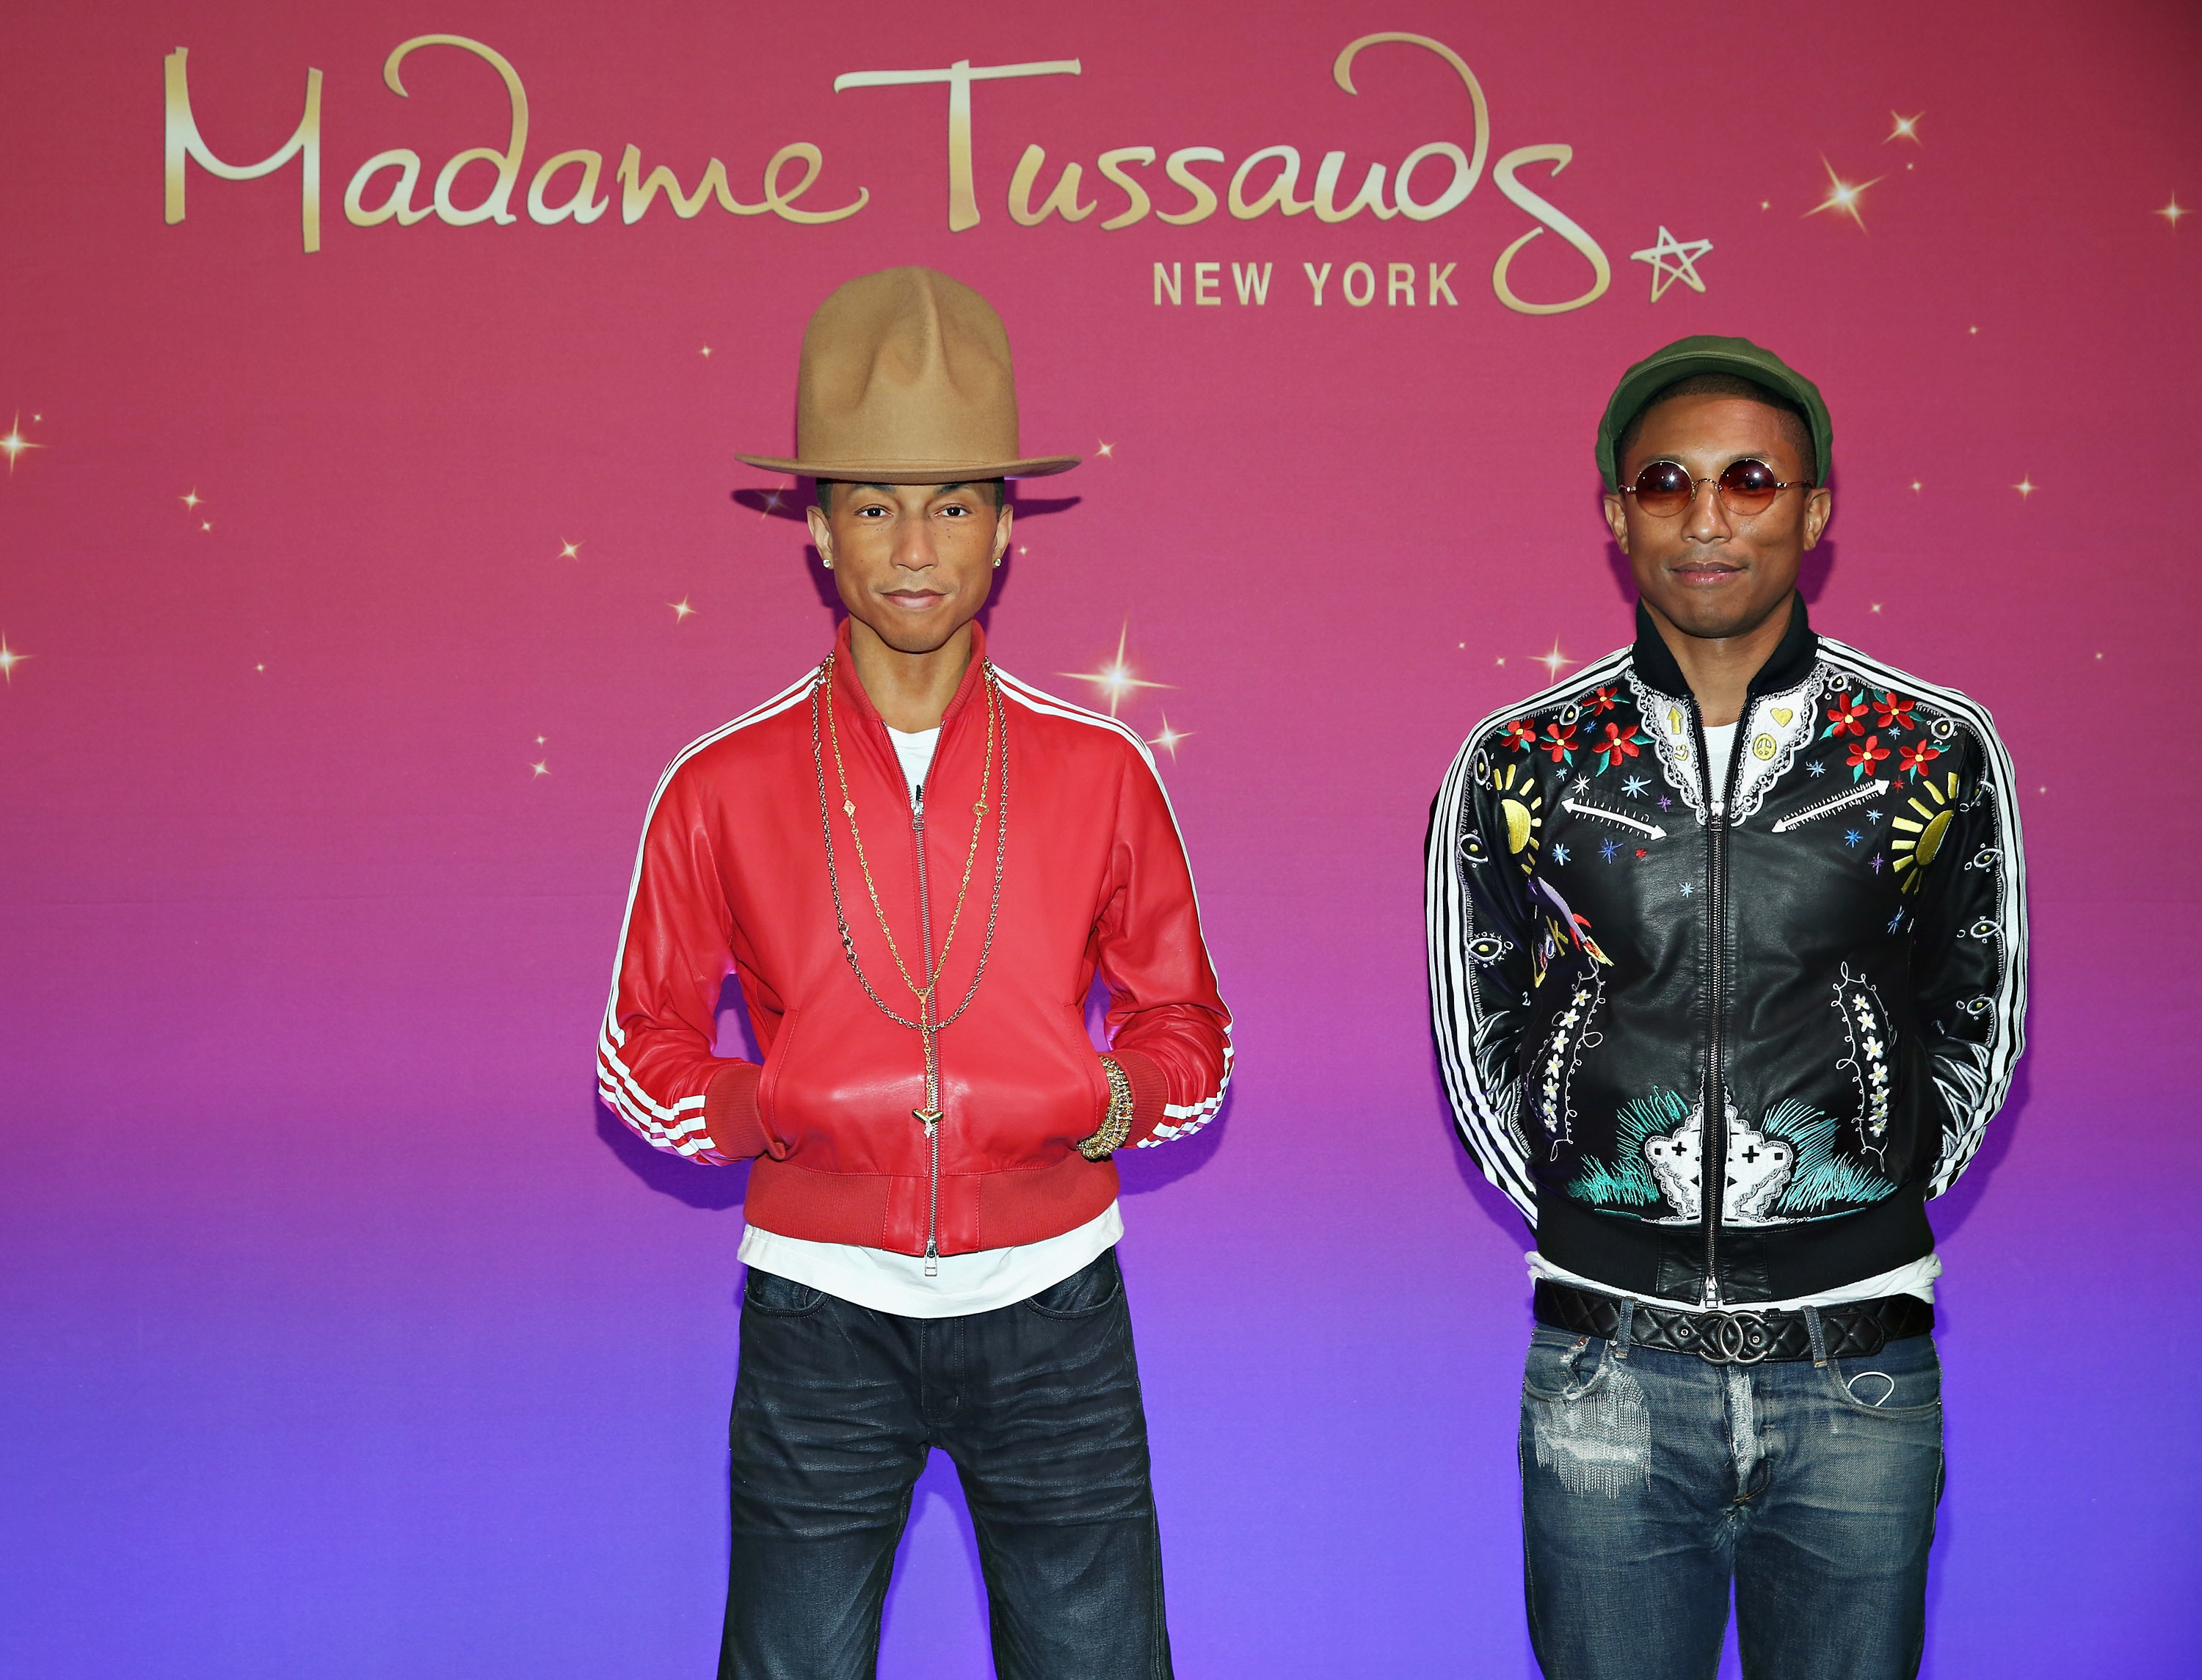 ファレル・ウィリアムス  The images shown depict wax figures created and owned by Madame Tussauds.